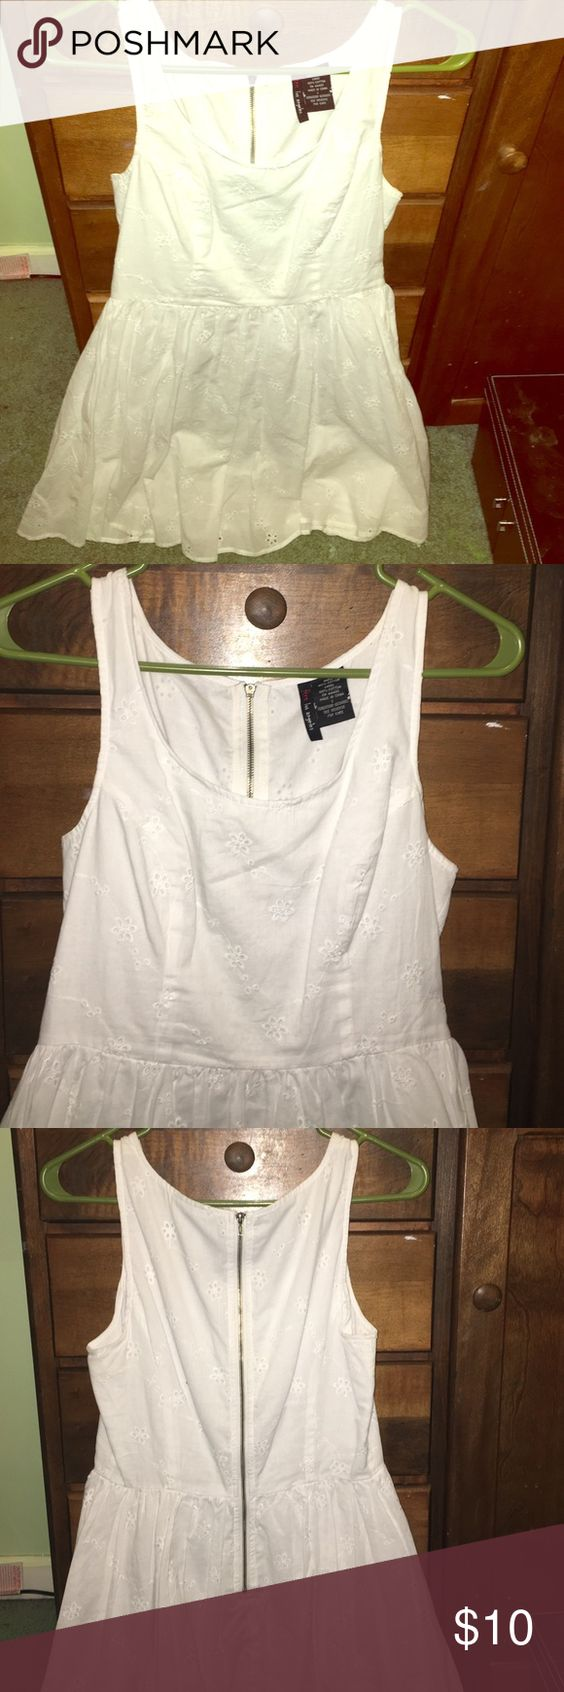 White eyelet dress White tank dress detailed with flowers. Fit and flare style. Dresses Mini